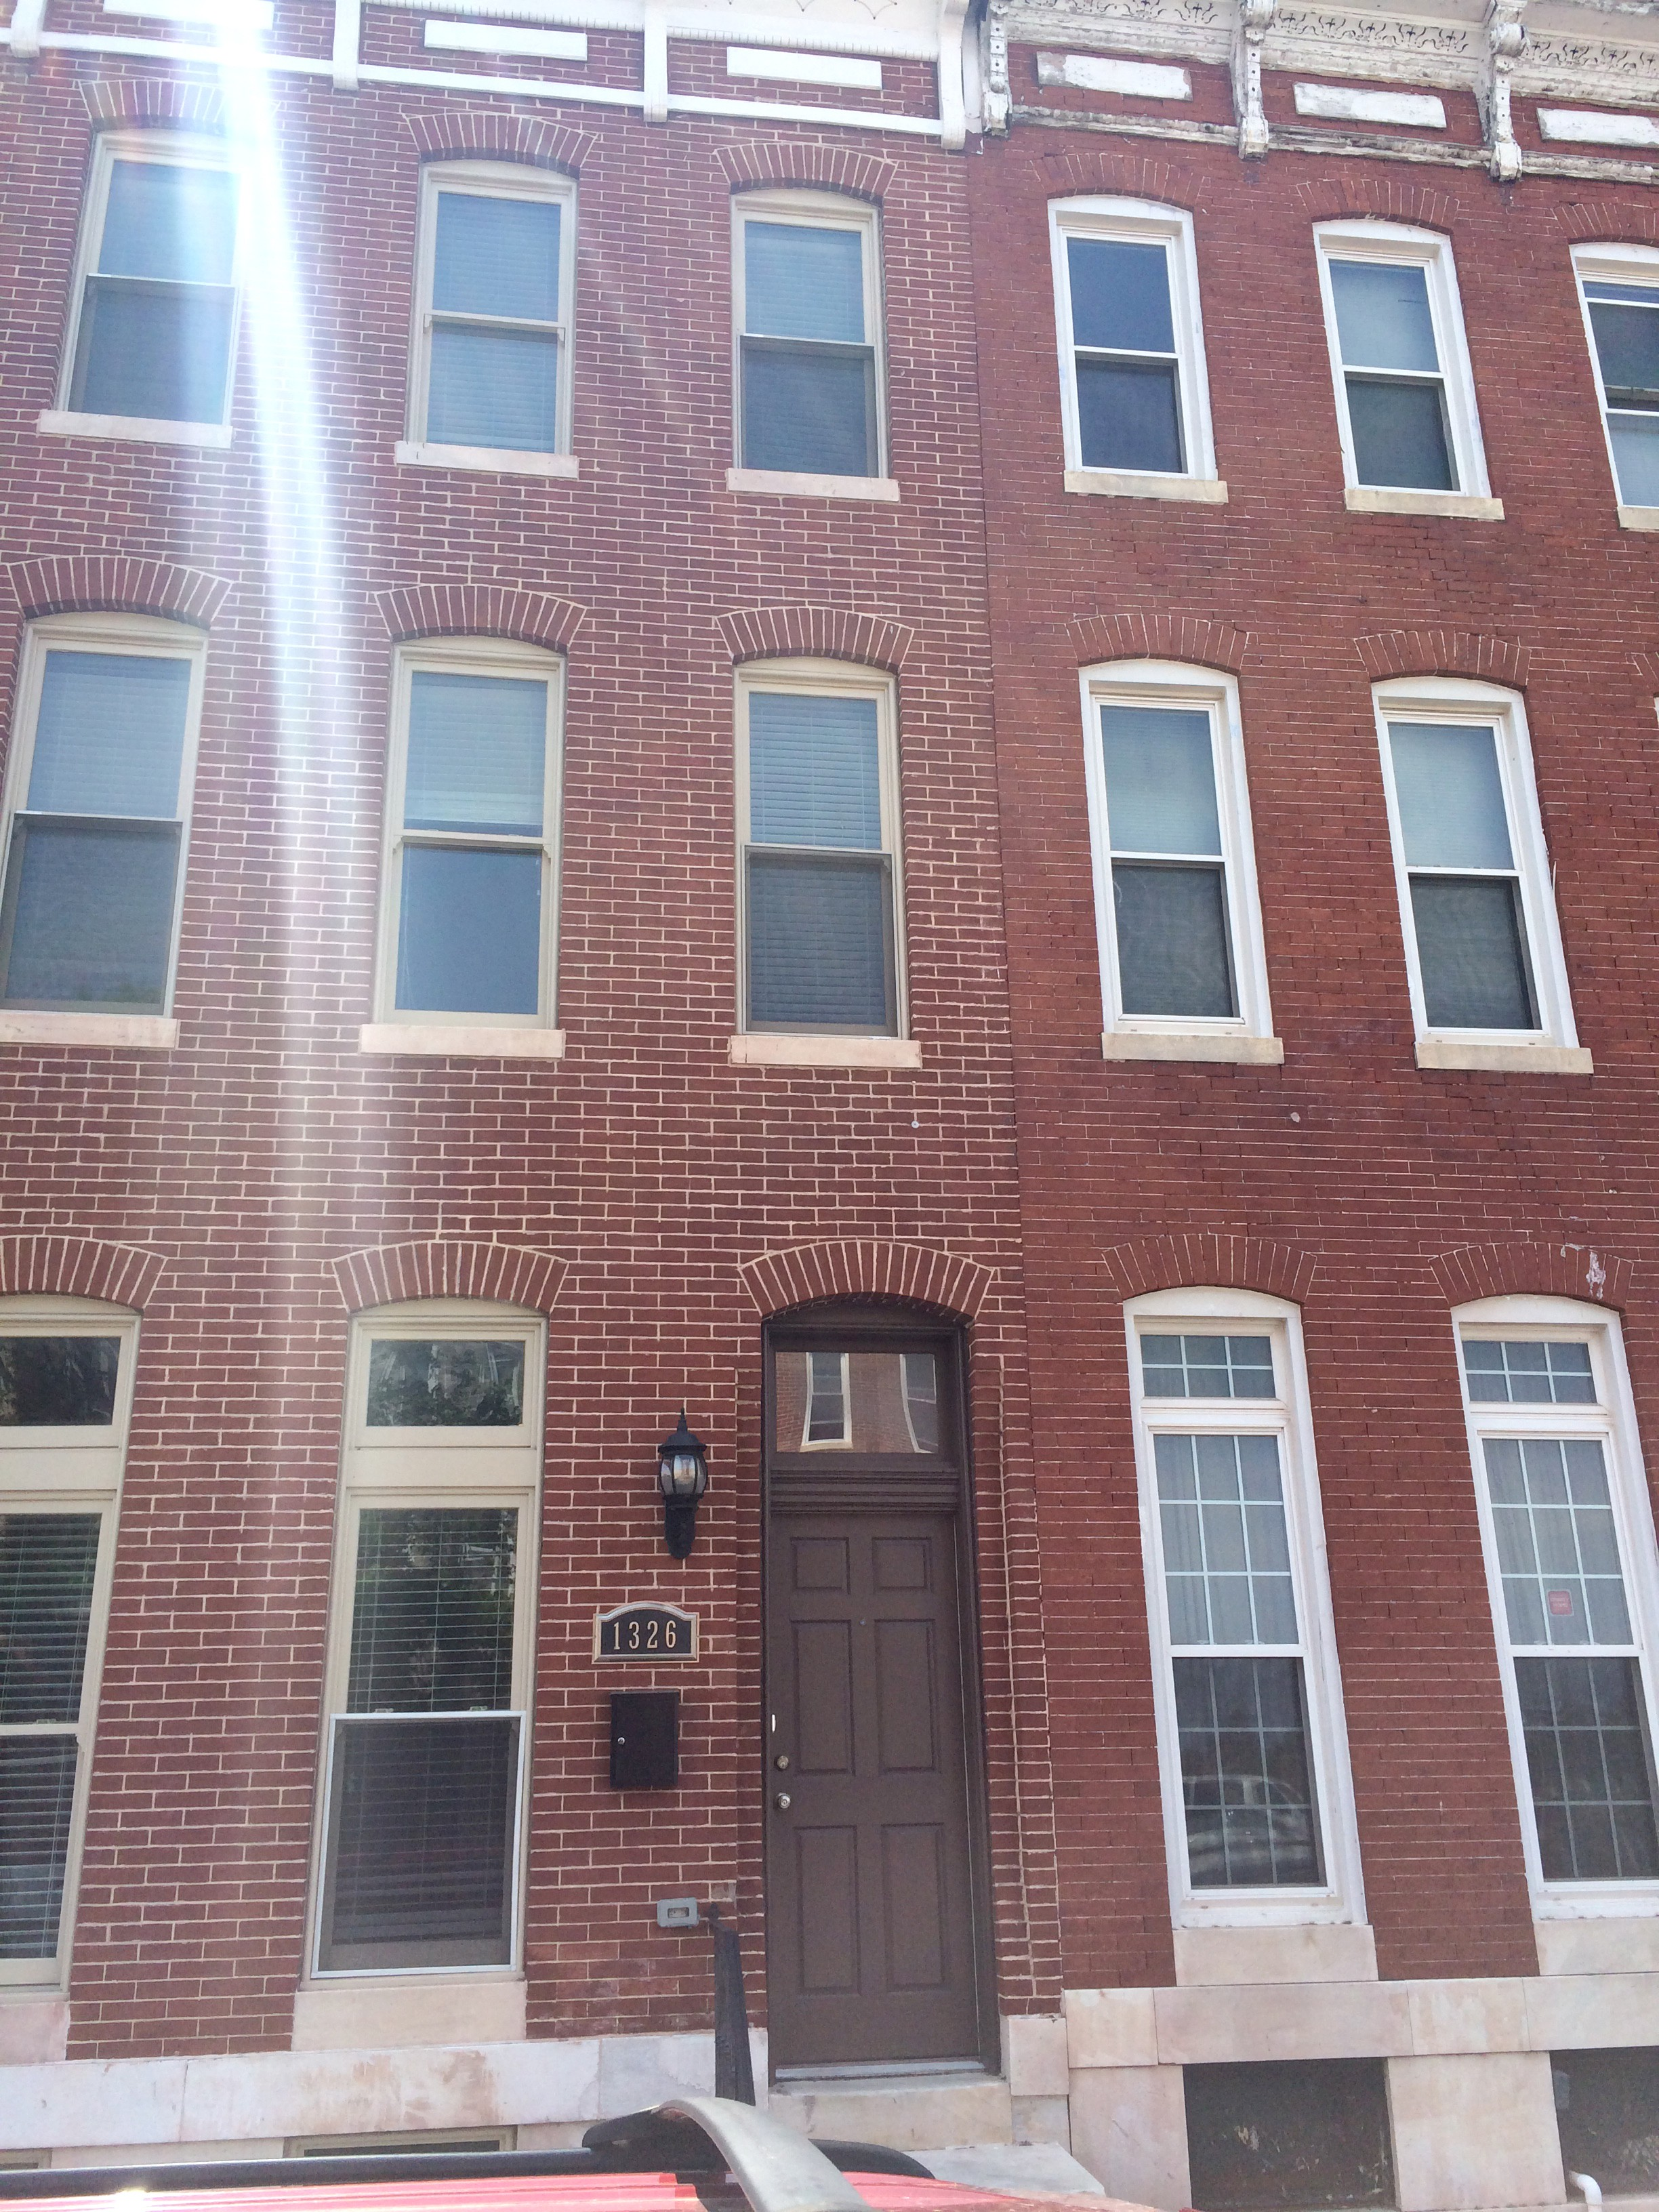 1601 East Preston Street 3 Baltimore Md 21213 3 Bedroom Apartment For Rent For 1 300 Month